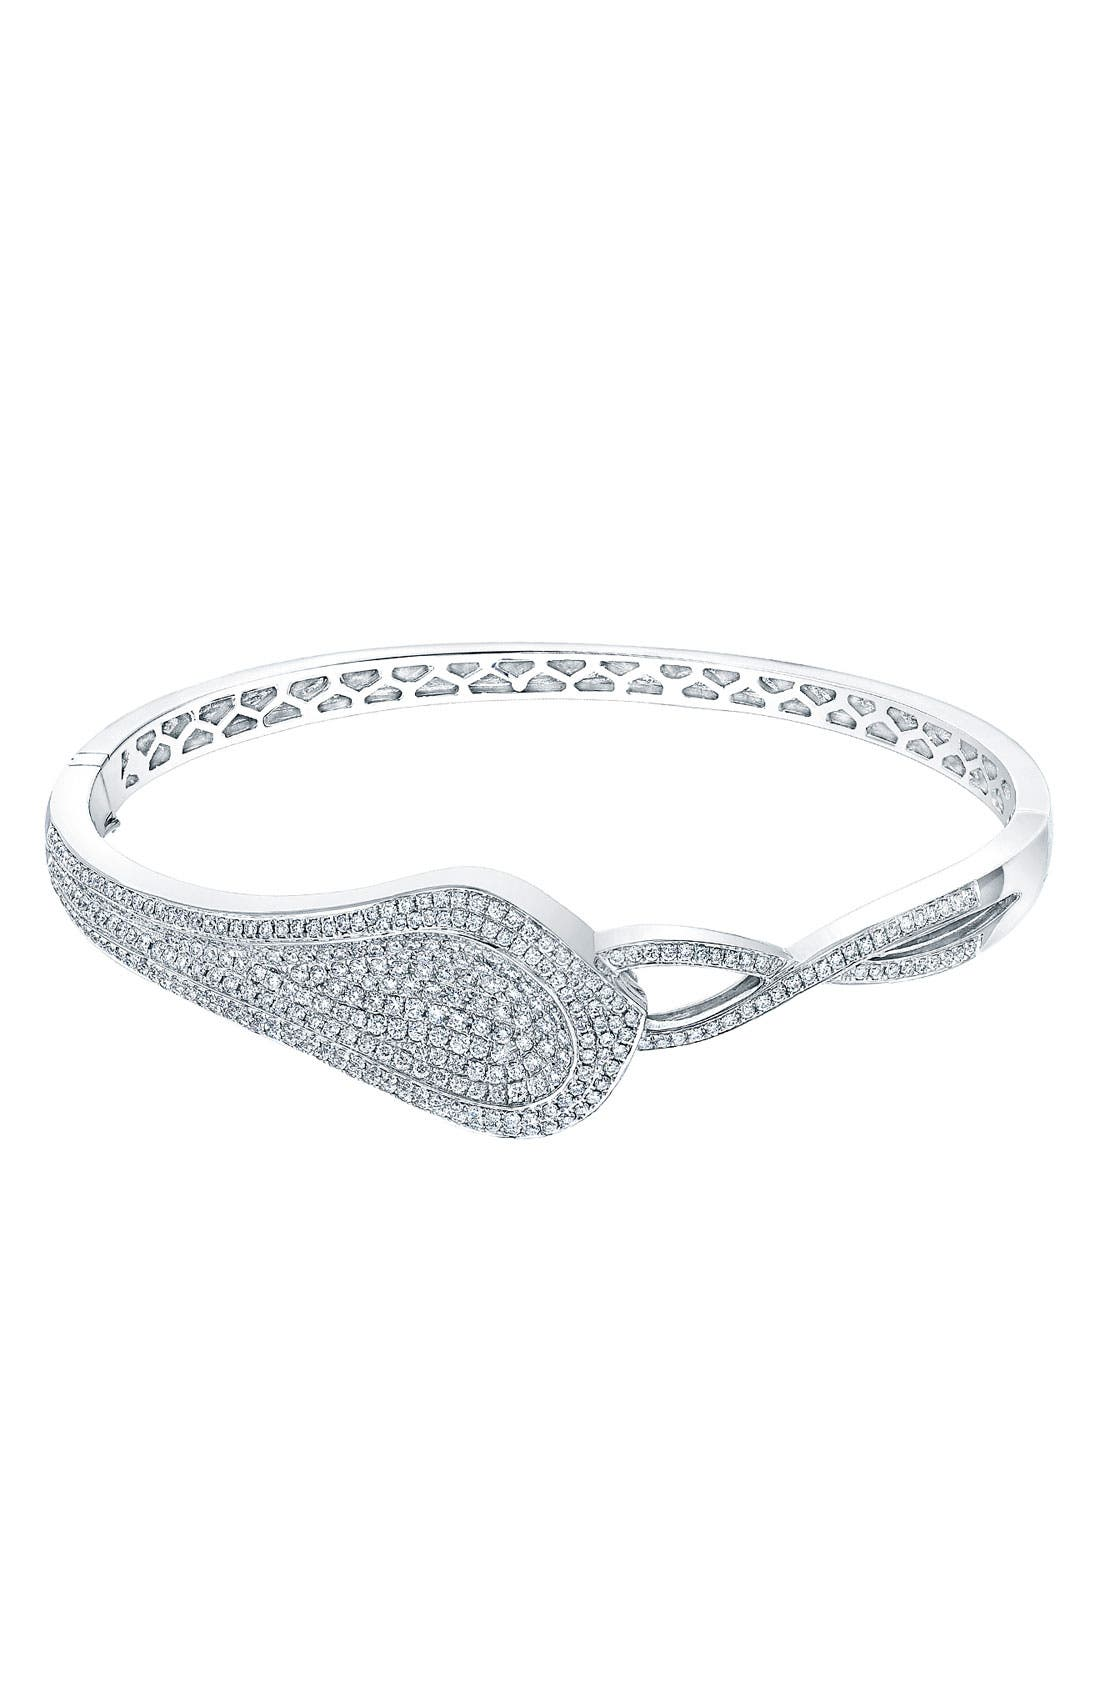 Alternate Image 1 Selected - Bony Levy 'Paisley' Diamond Bangle (Nordstrom Exclusive)